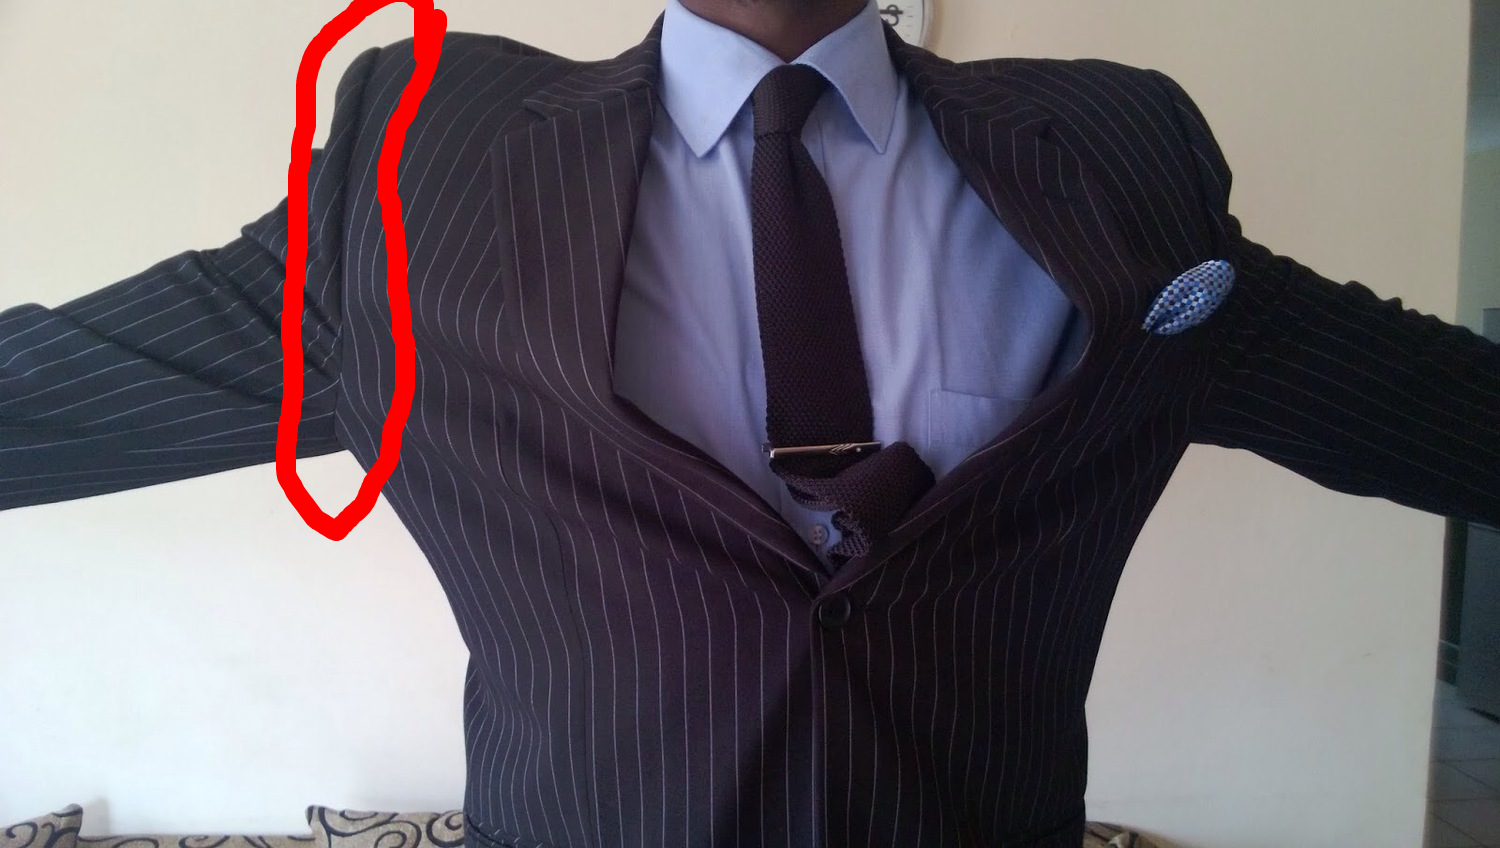 The sleeve head is gigantic, can you see how much room this guy has under his armpit?